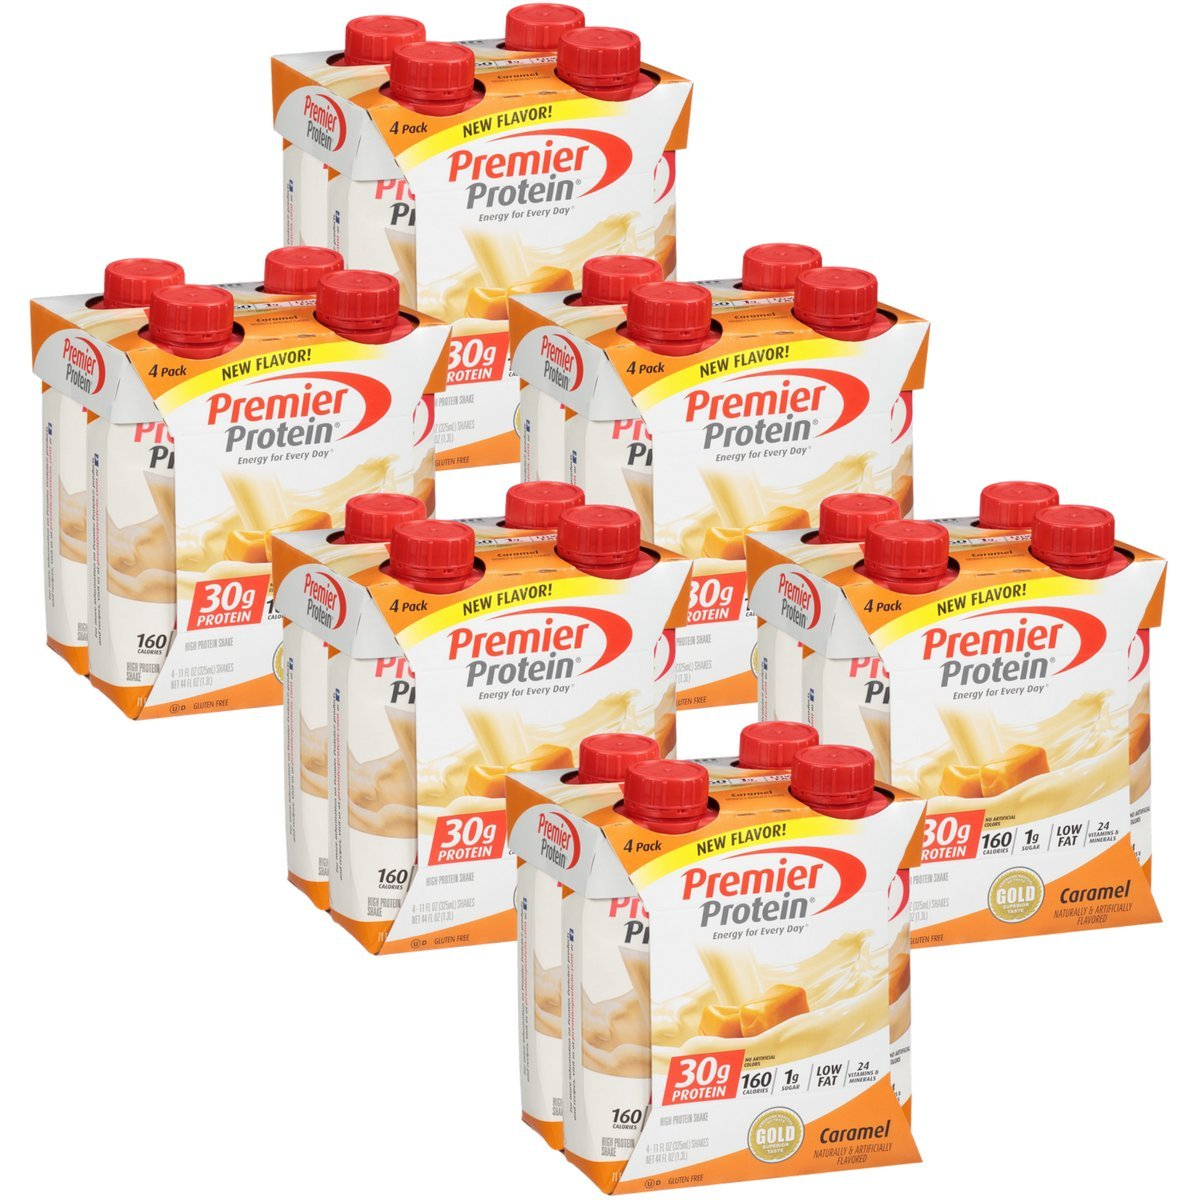 Premier Protein 30g Protein Shakes, Caramel, 11 Fluid Ounces, 4 Count (Pack of 6)